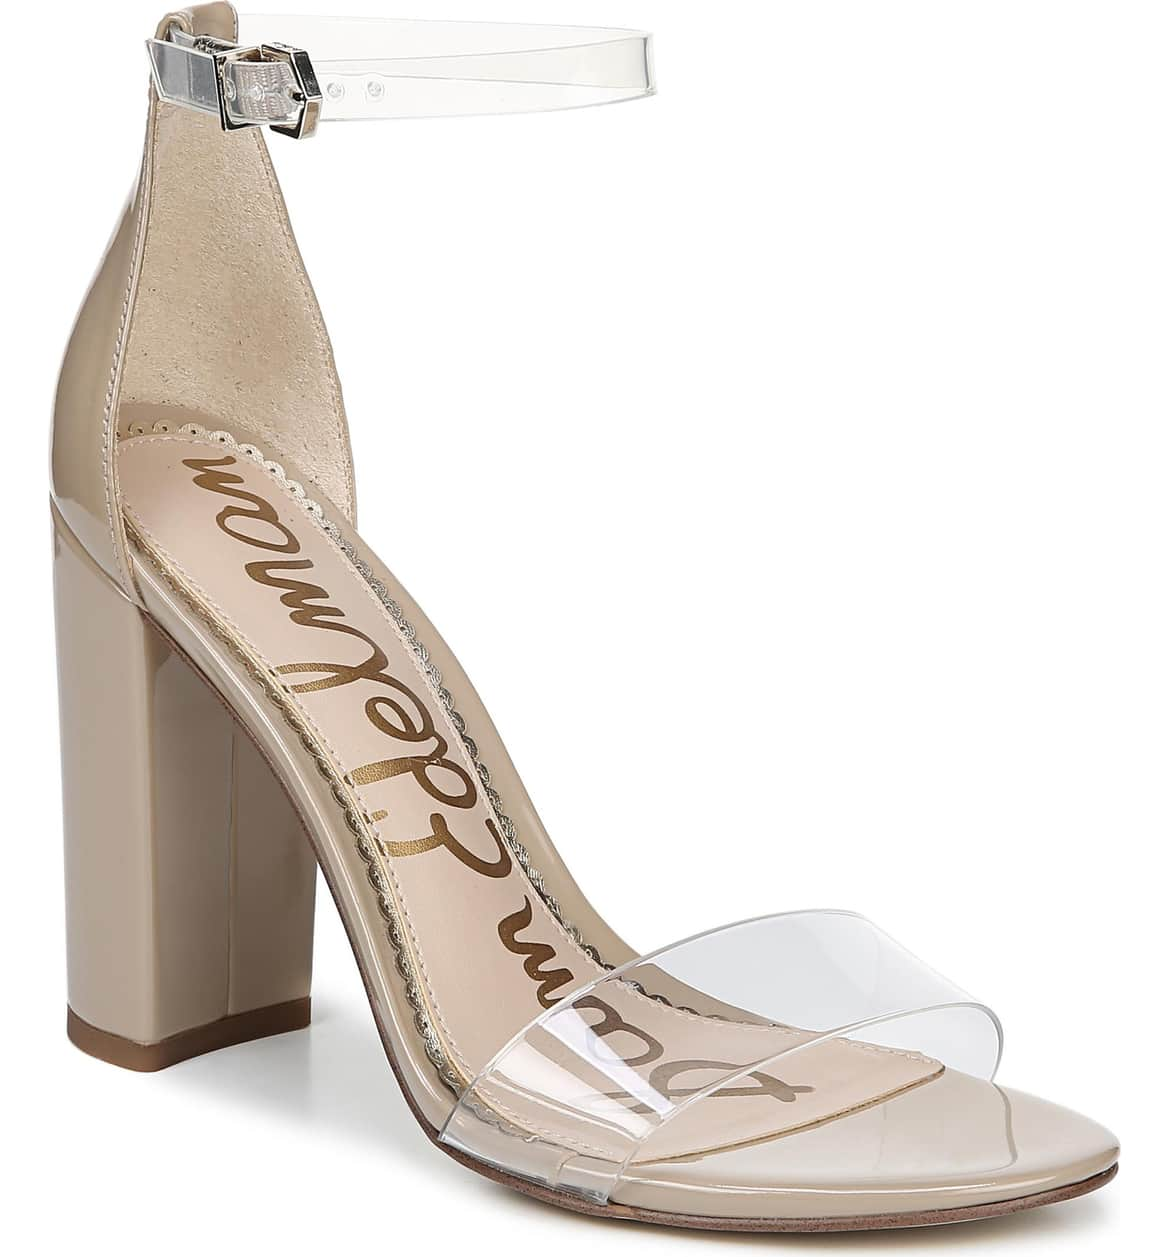 <p>Modern and minimalist, an essential ankle-strap sandal set on a chunky wrapped heel serves as a versatile go-to style. $119.95 (Image: Nordstrom){&amp;nbsp;}</p><p></p>